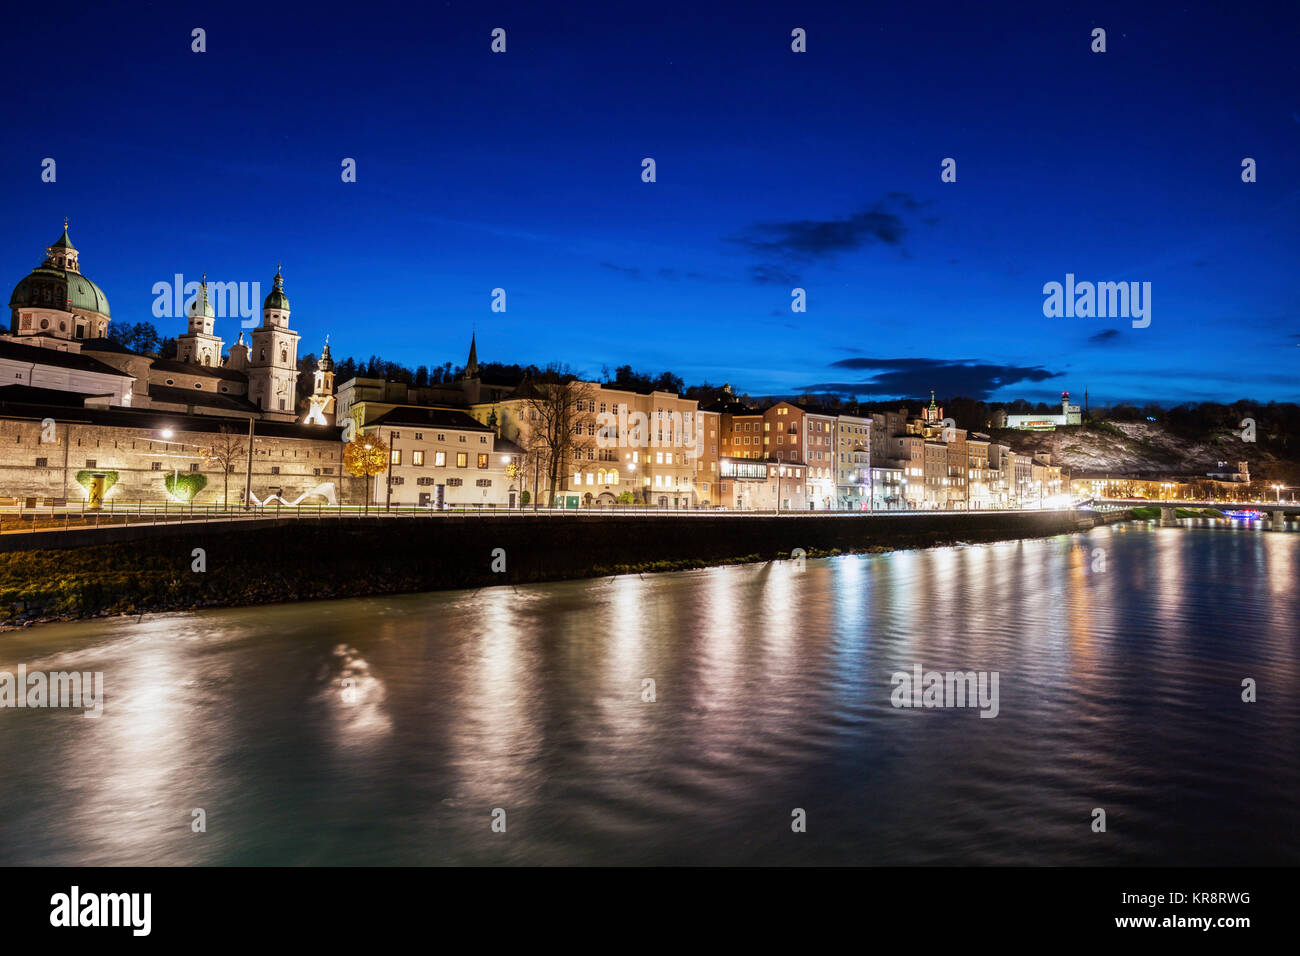 Austria, Salzburg, Riverbank with buildings at night - Stock Image